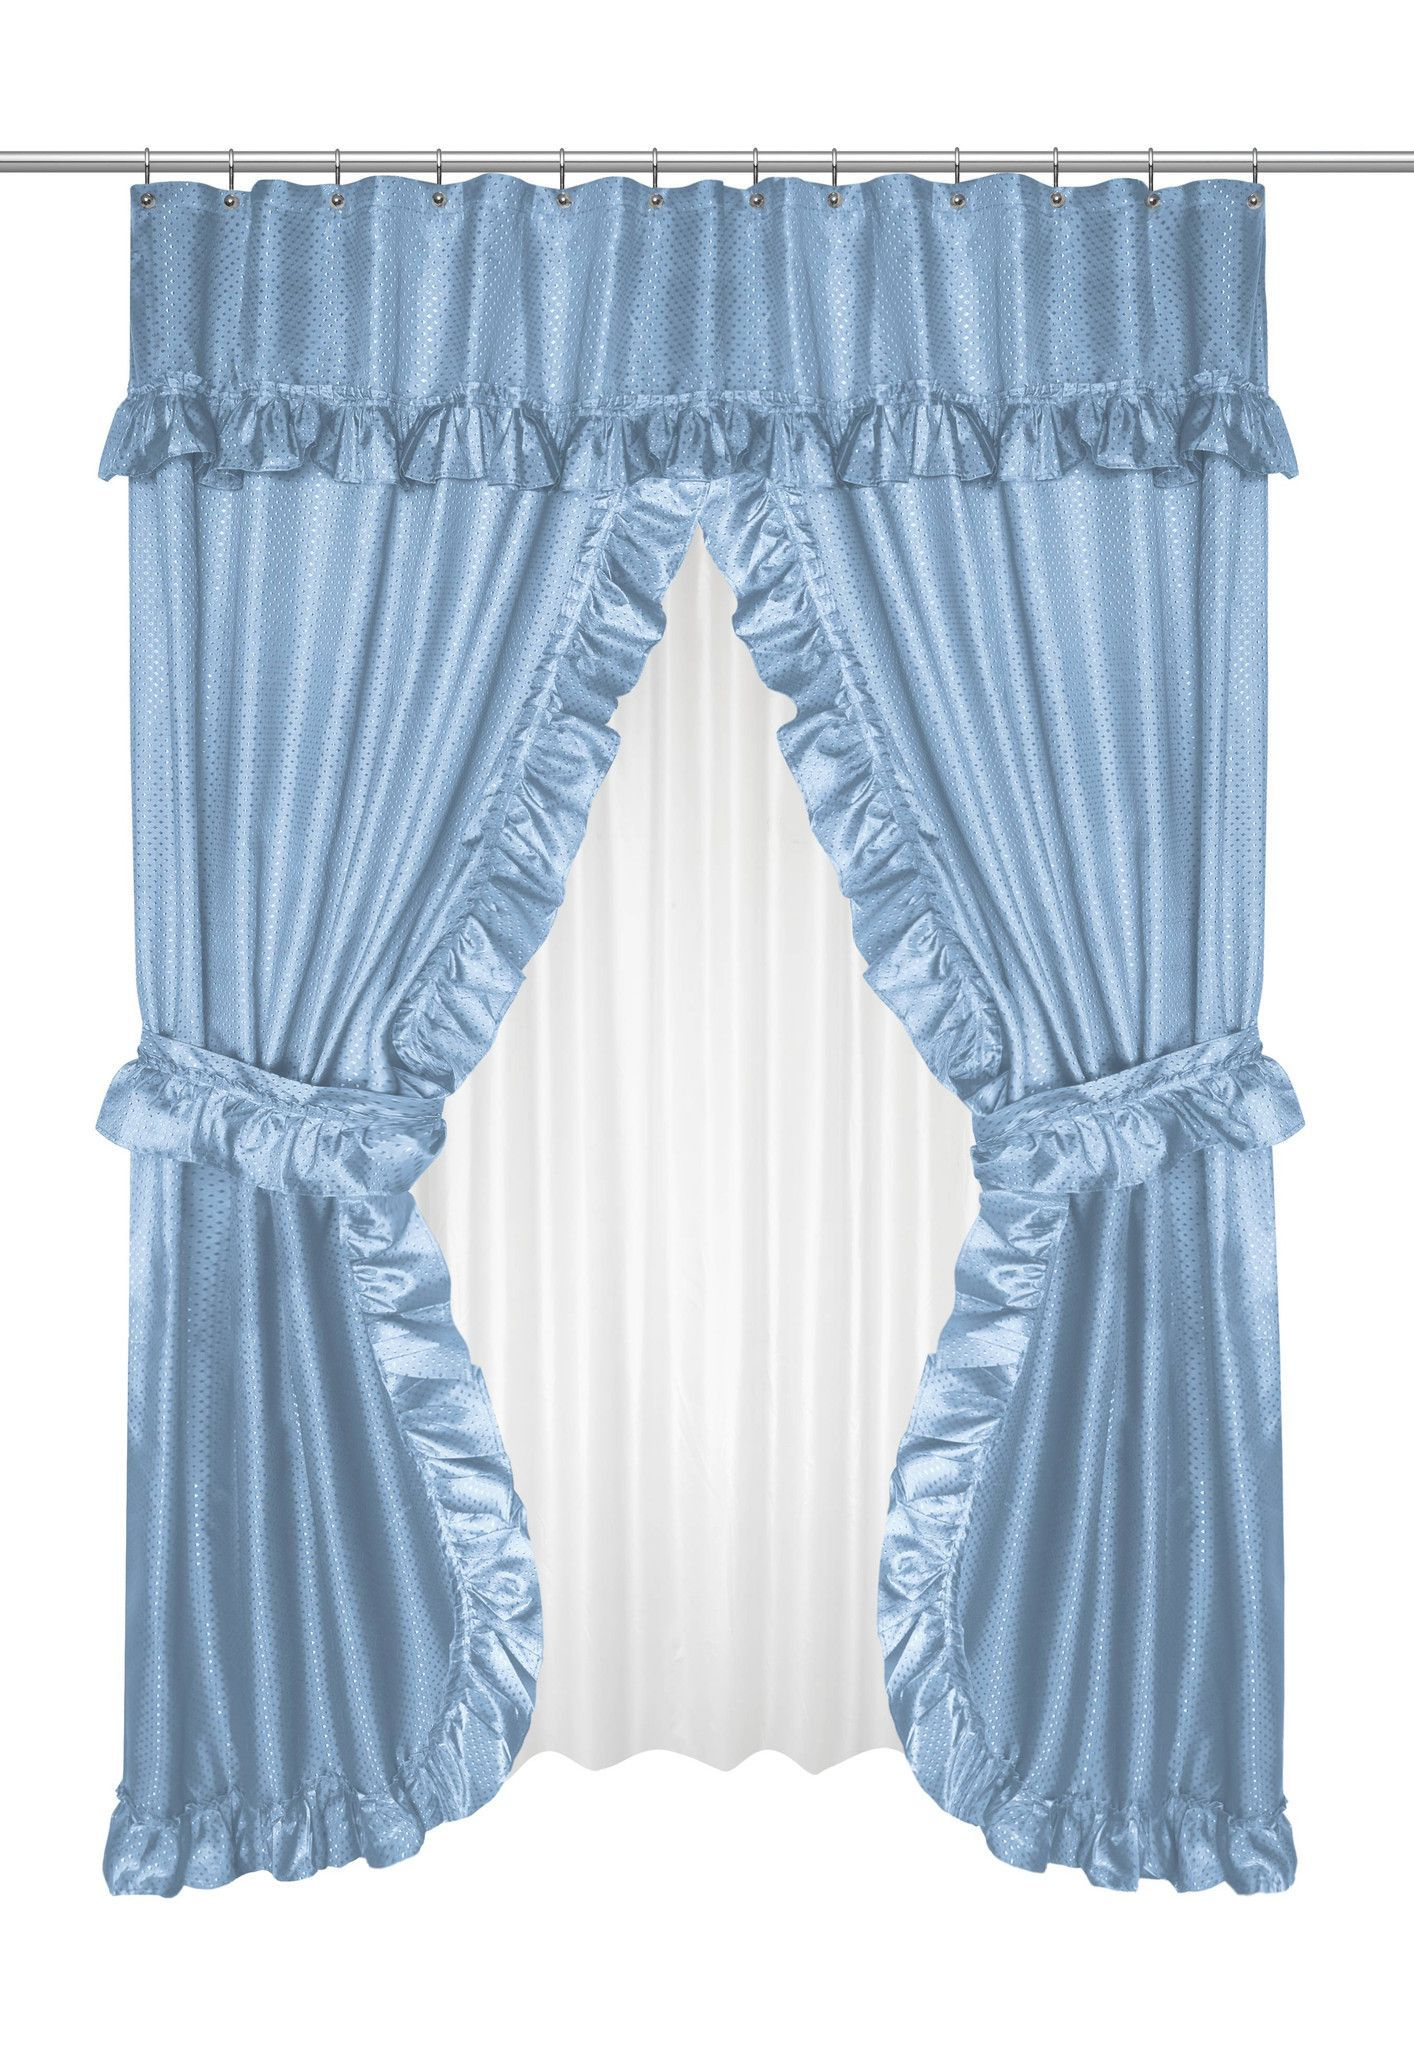 Royal Bath Double Swag Shower Curtain W Matching Window Curtain